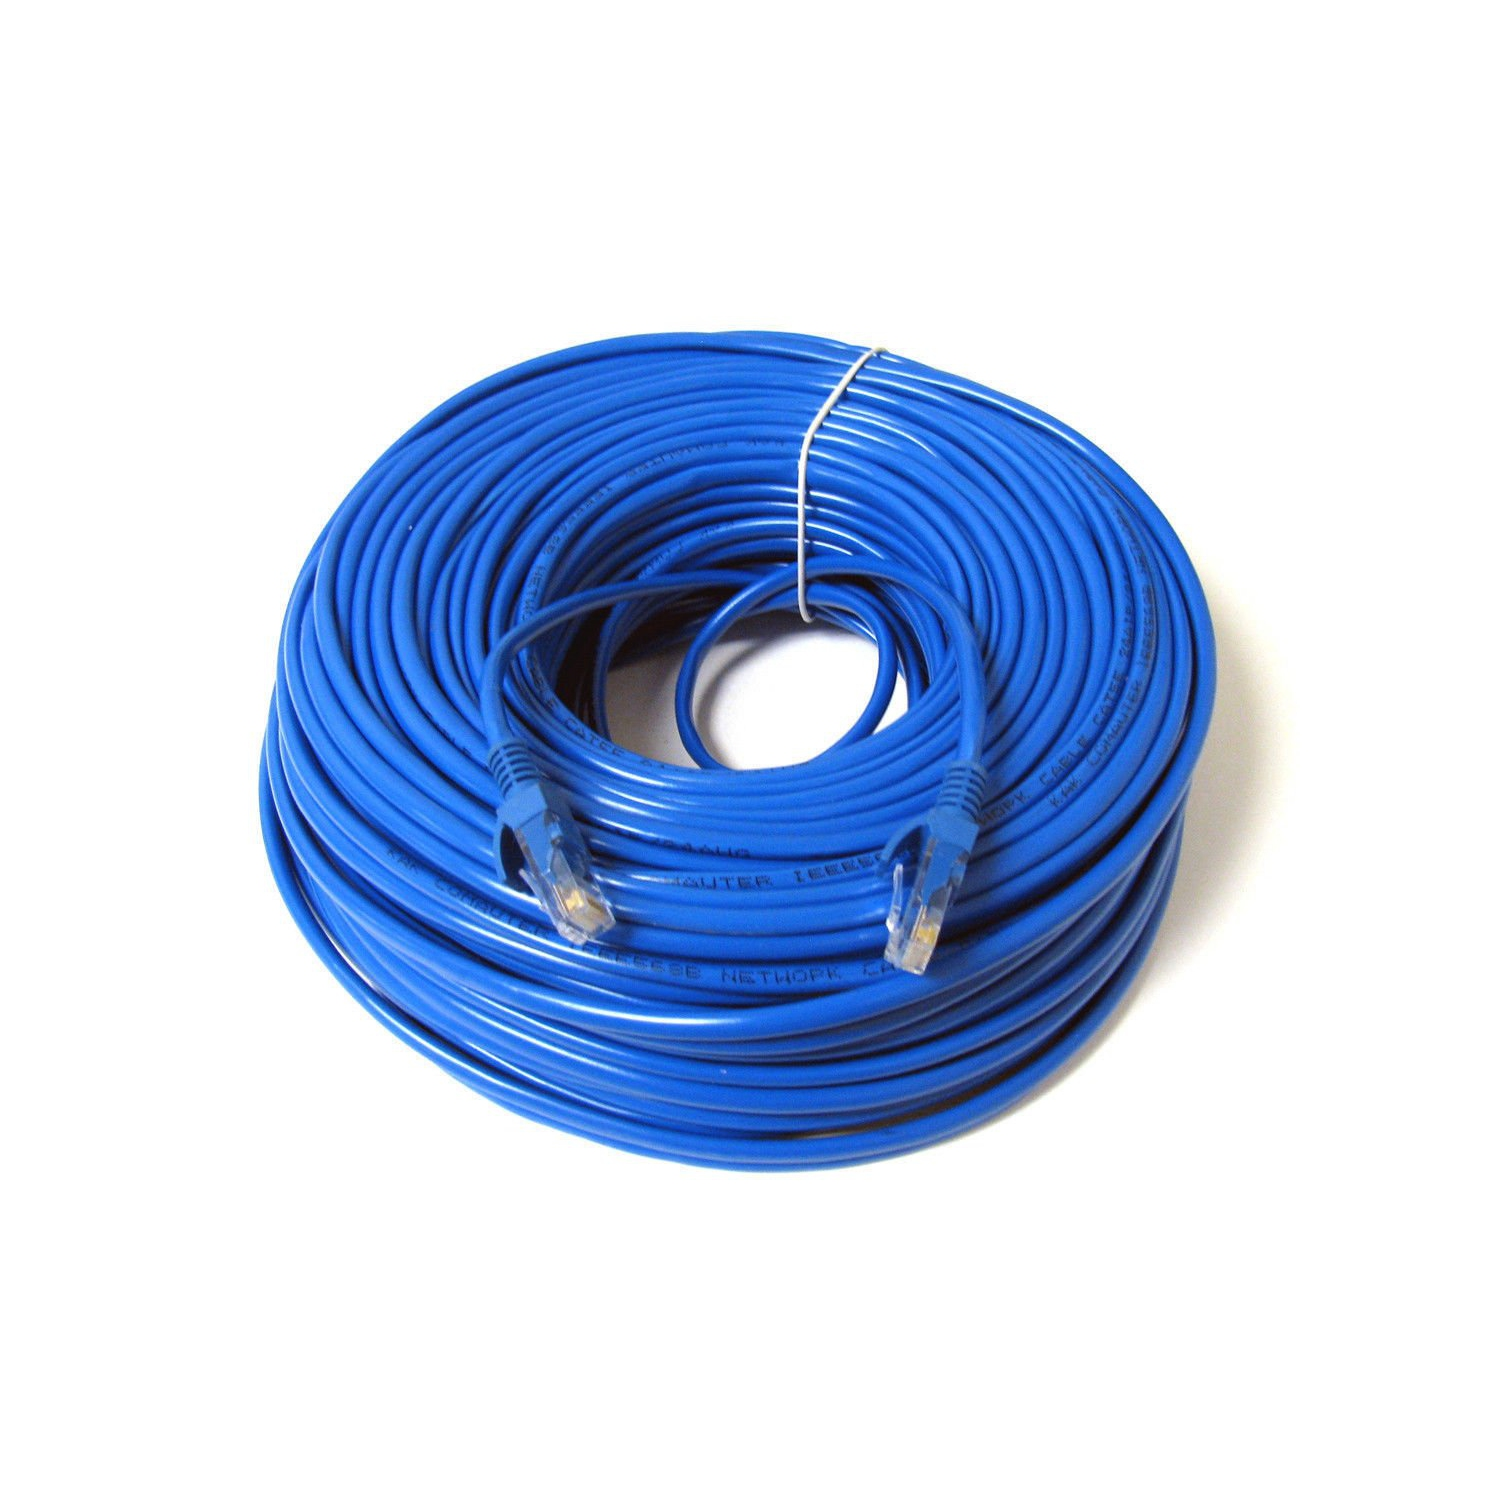 Network Cables Ethernet Patch Cat5 Cat5e Cat6 Best Buy Canada Cable Internet Wiring Konex Tm 100ft Blue Wire Cat 6 Cord With Snagless Rj45 Connectors